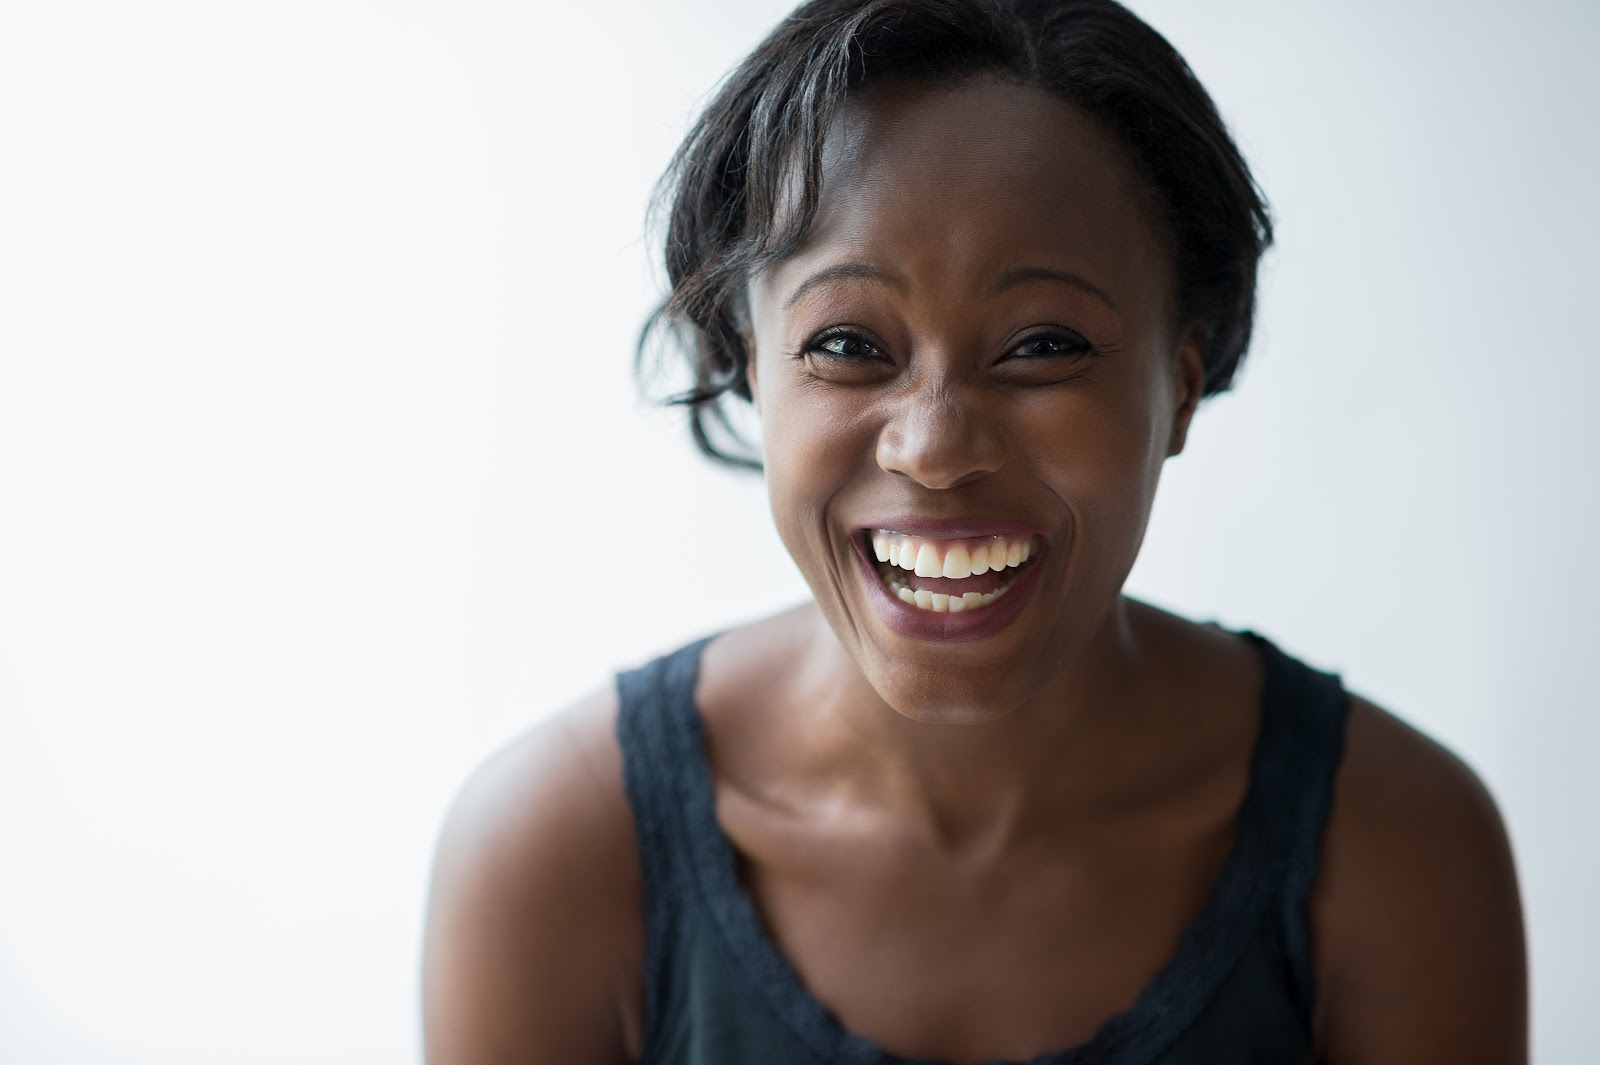 a woman laughs against a white background